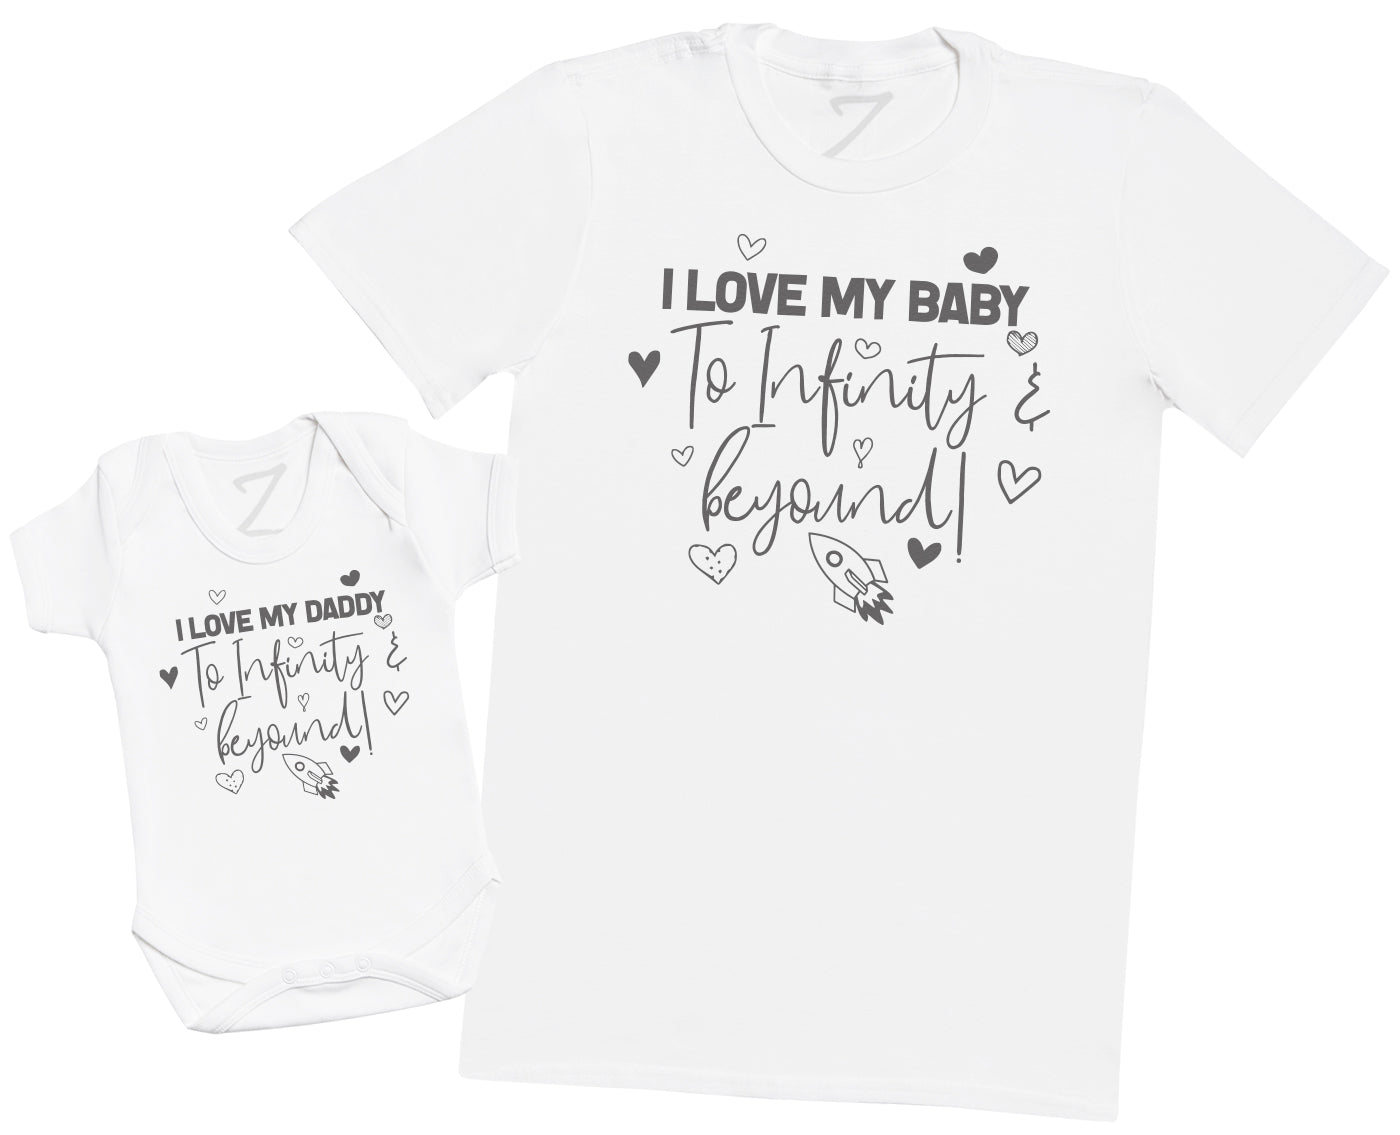 I Love My Daddy & Baby To Infinity & Beyond - Mens T Shirt & Baby Bodysuit